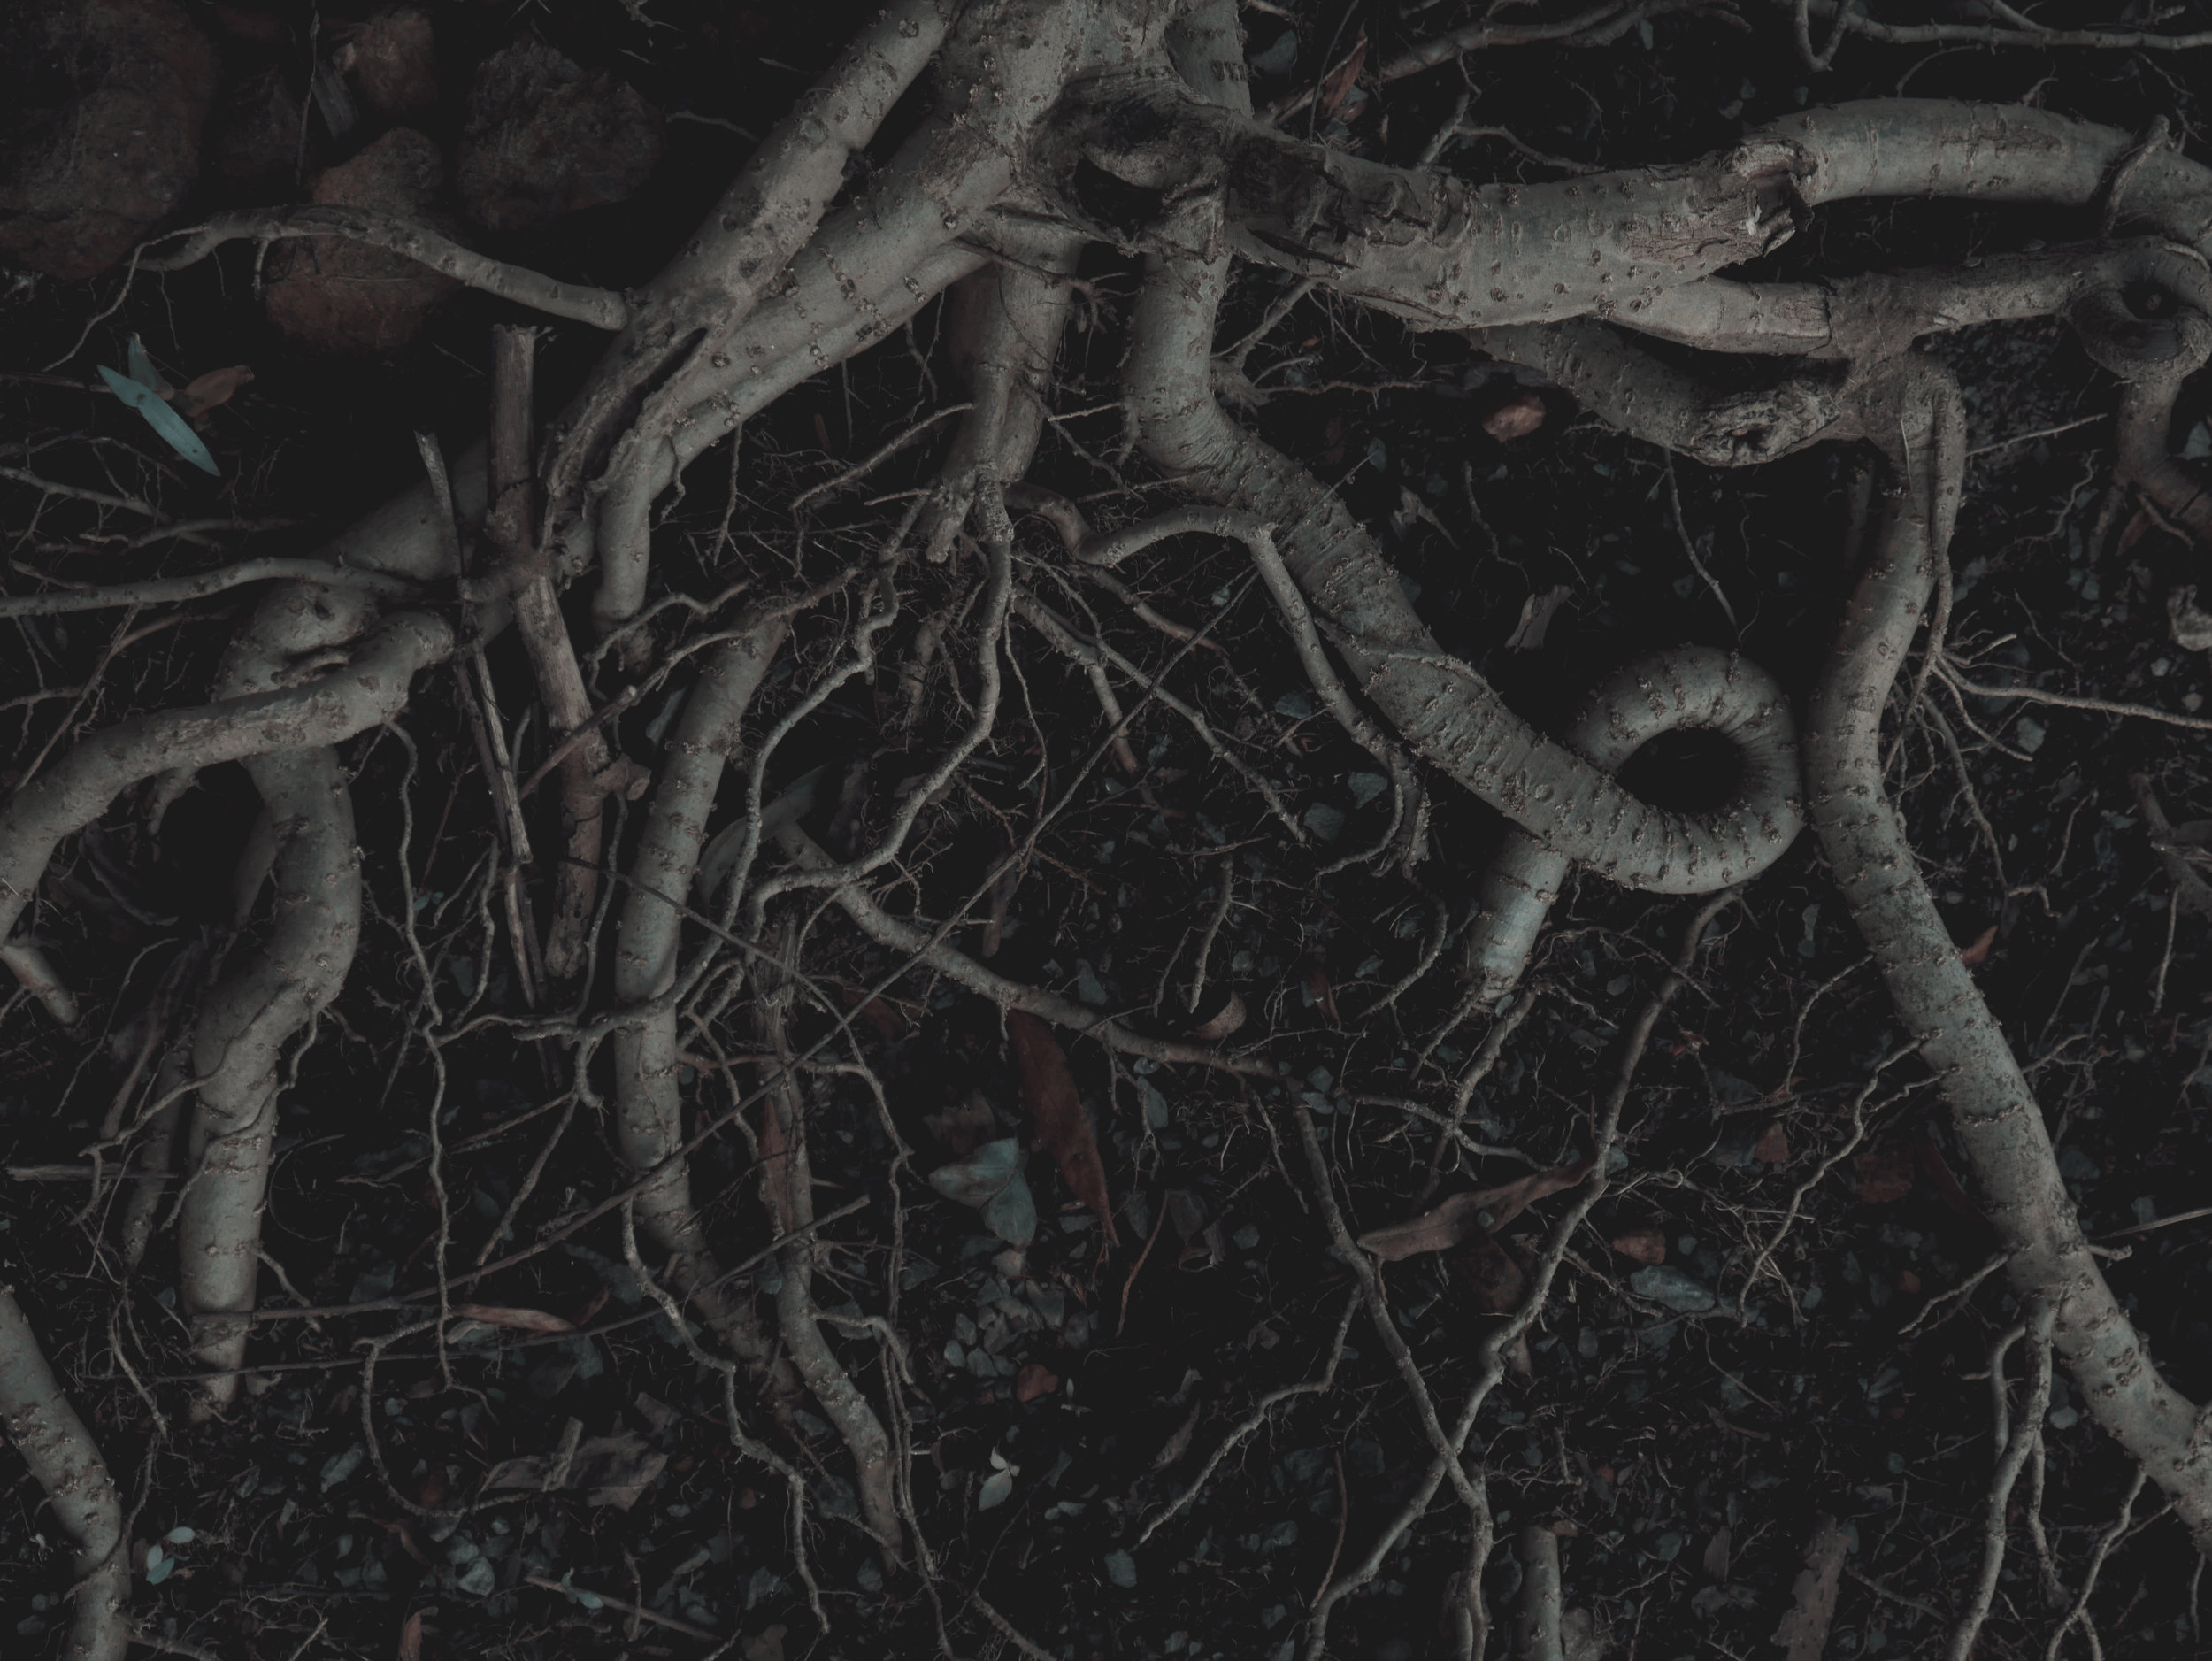 exposed roots.jpg